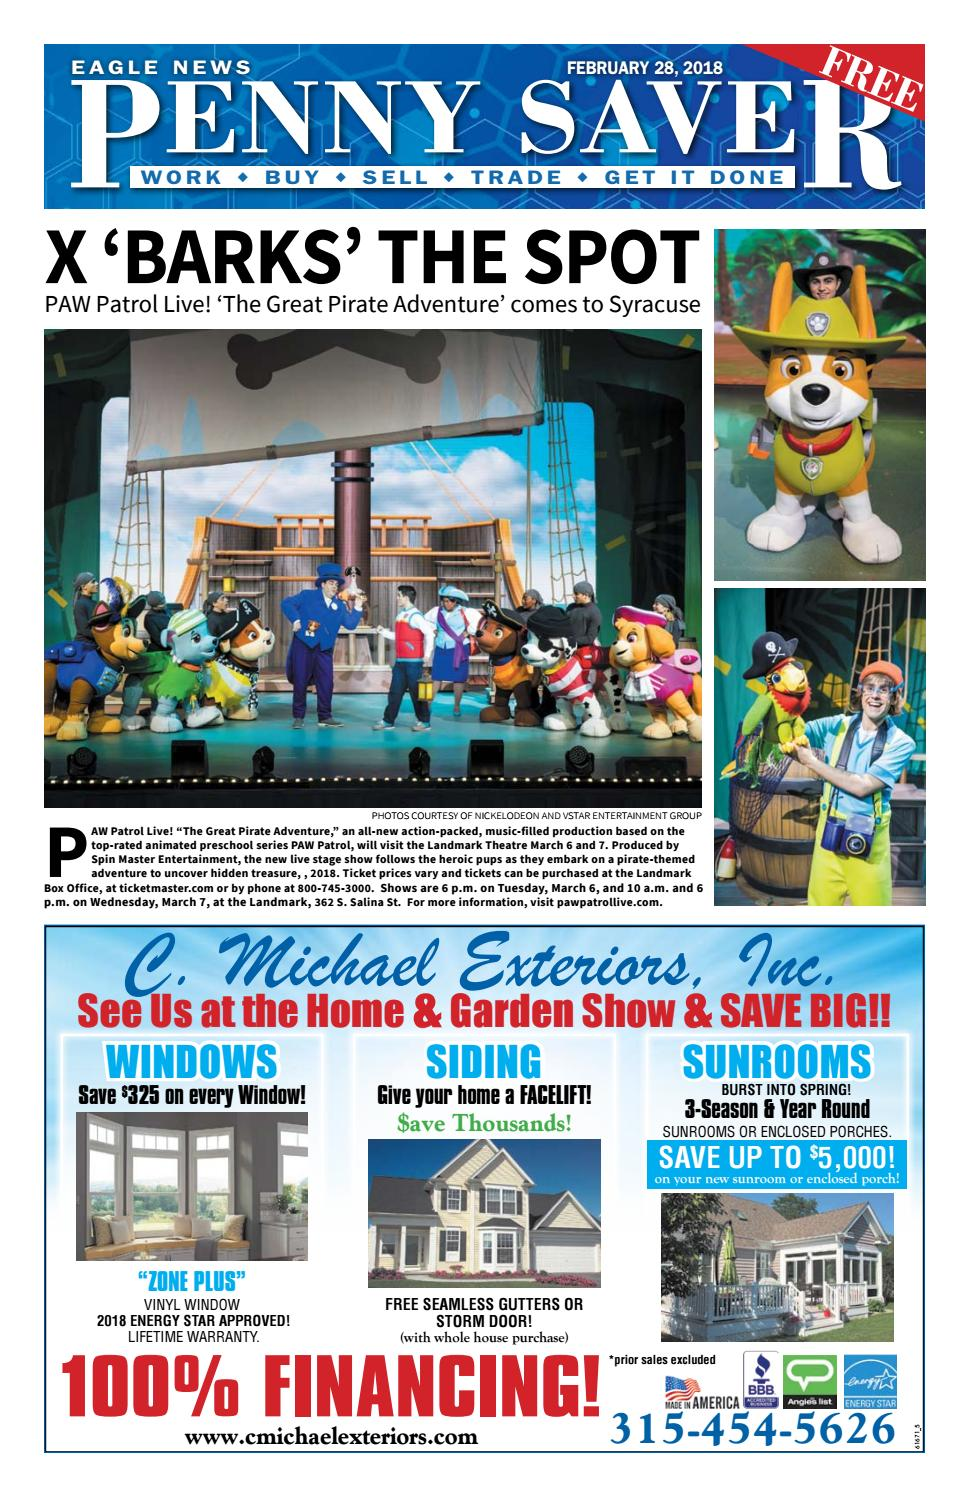 Penny saver feb 28 2018 by Eagle Newspapers - issuu